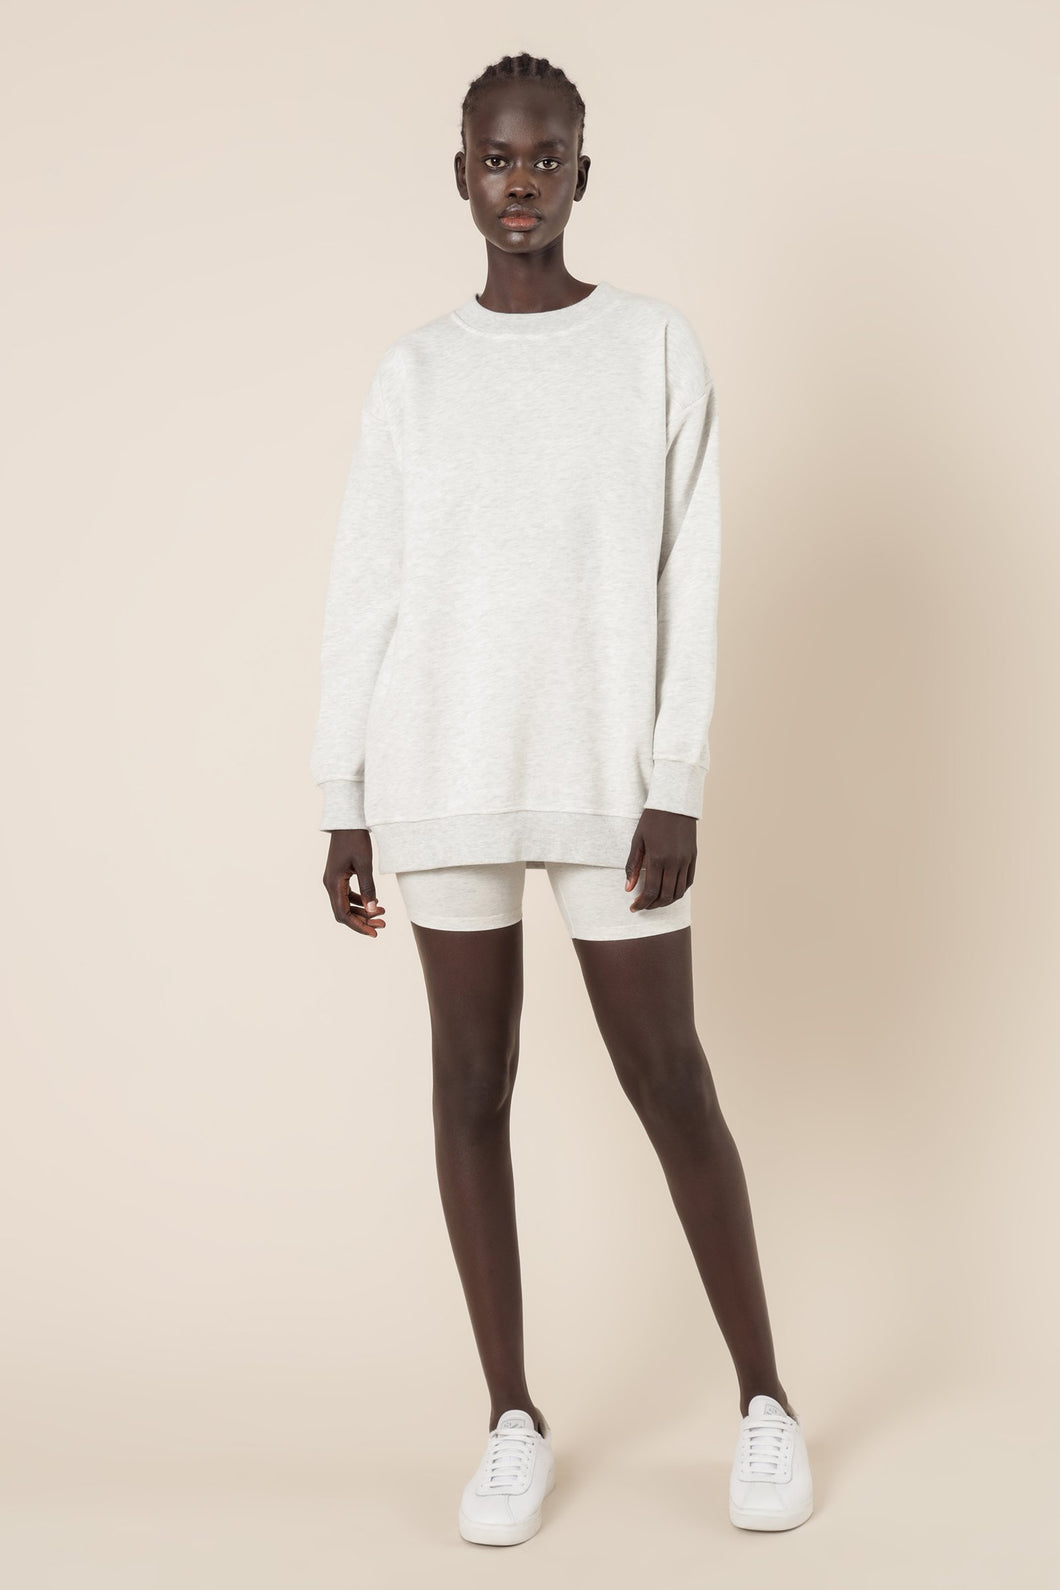 NUDE LUCY - CARTER CLASSIC BOYFRIEND SWEATER - SNOW MARLE